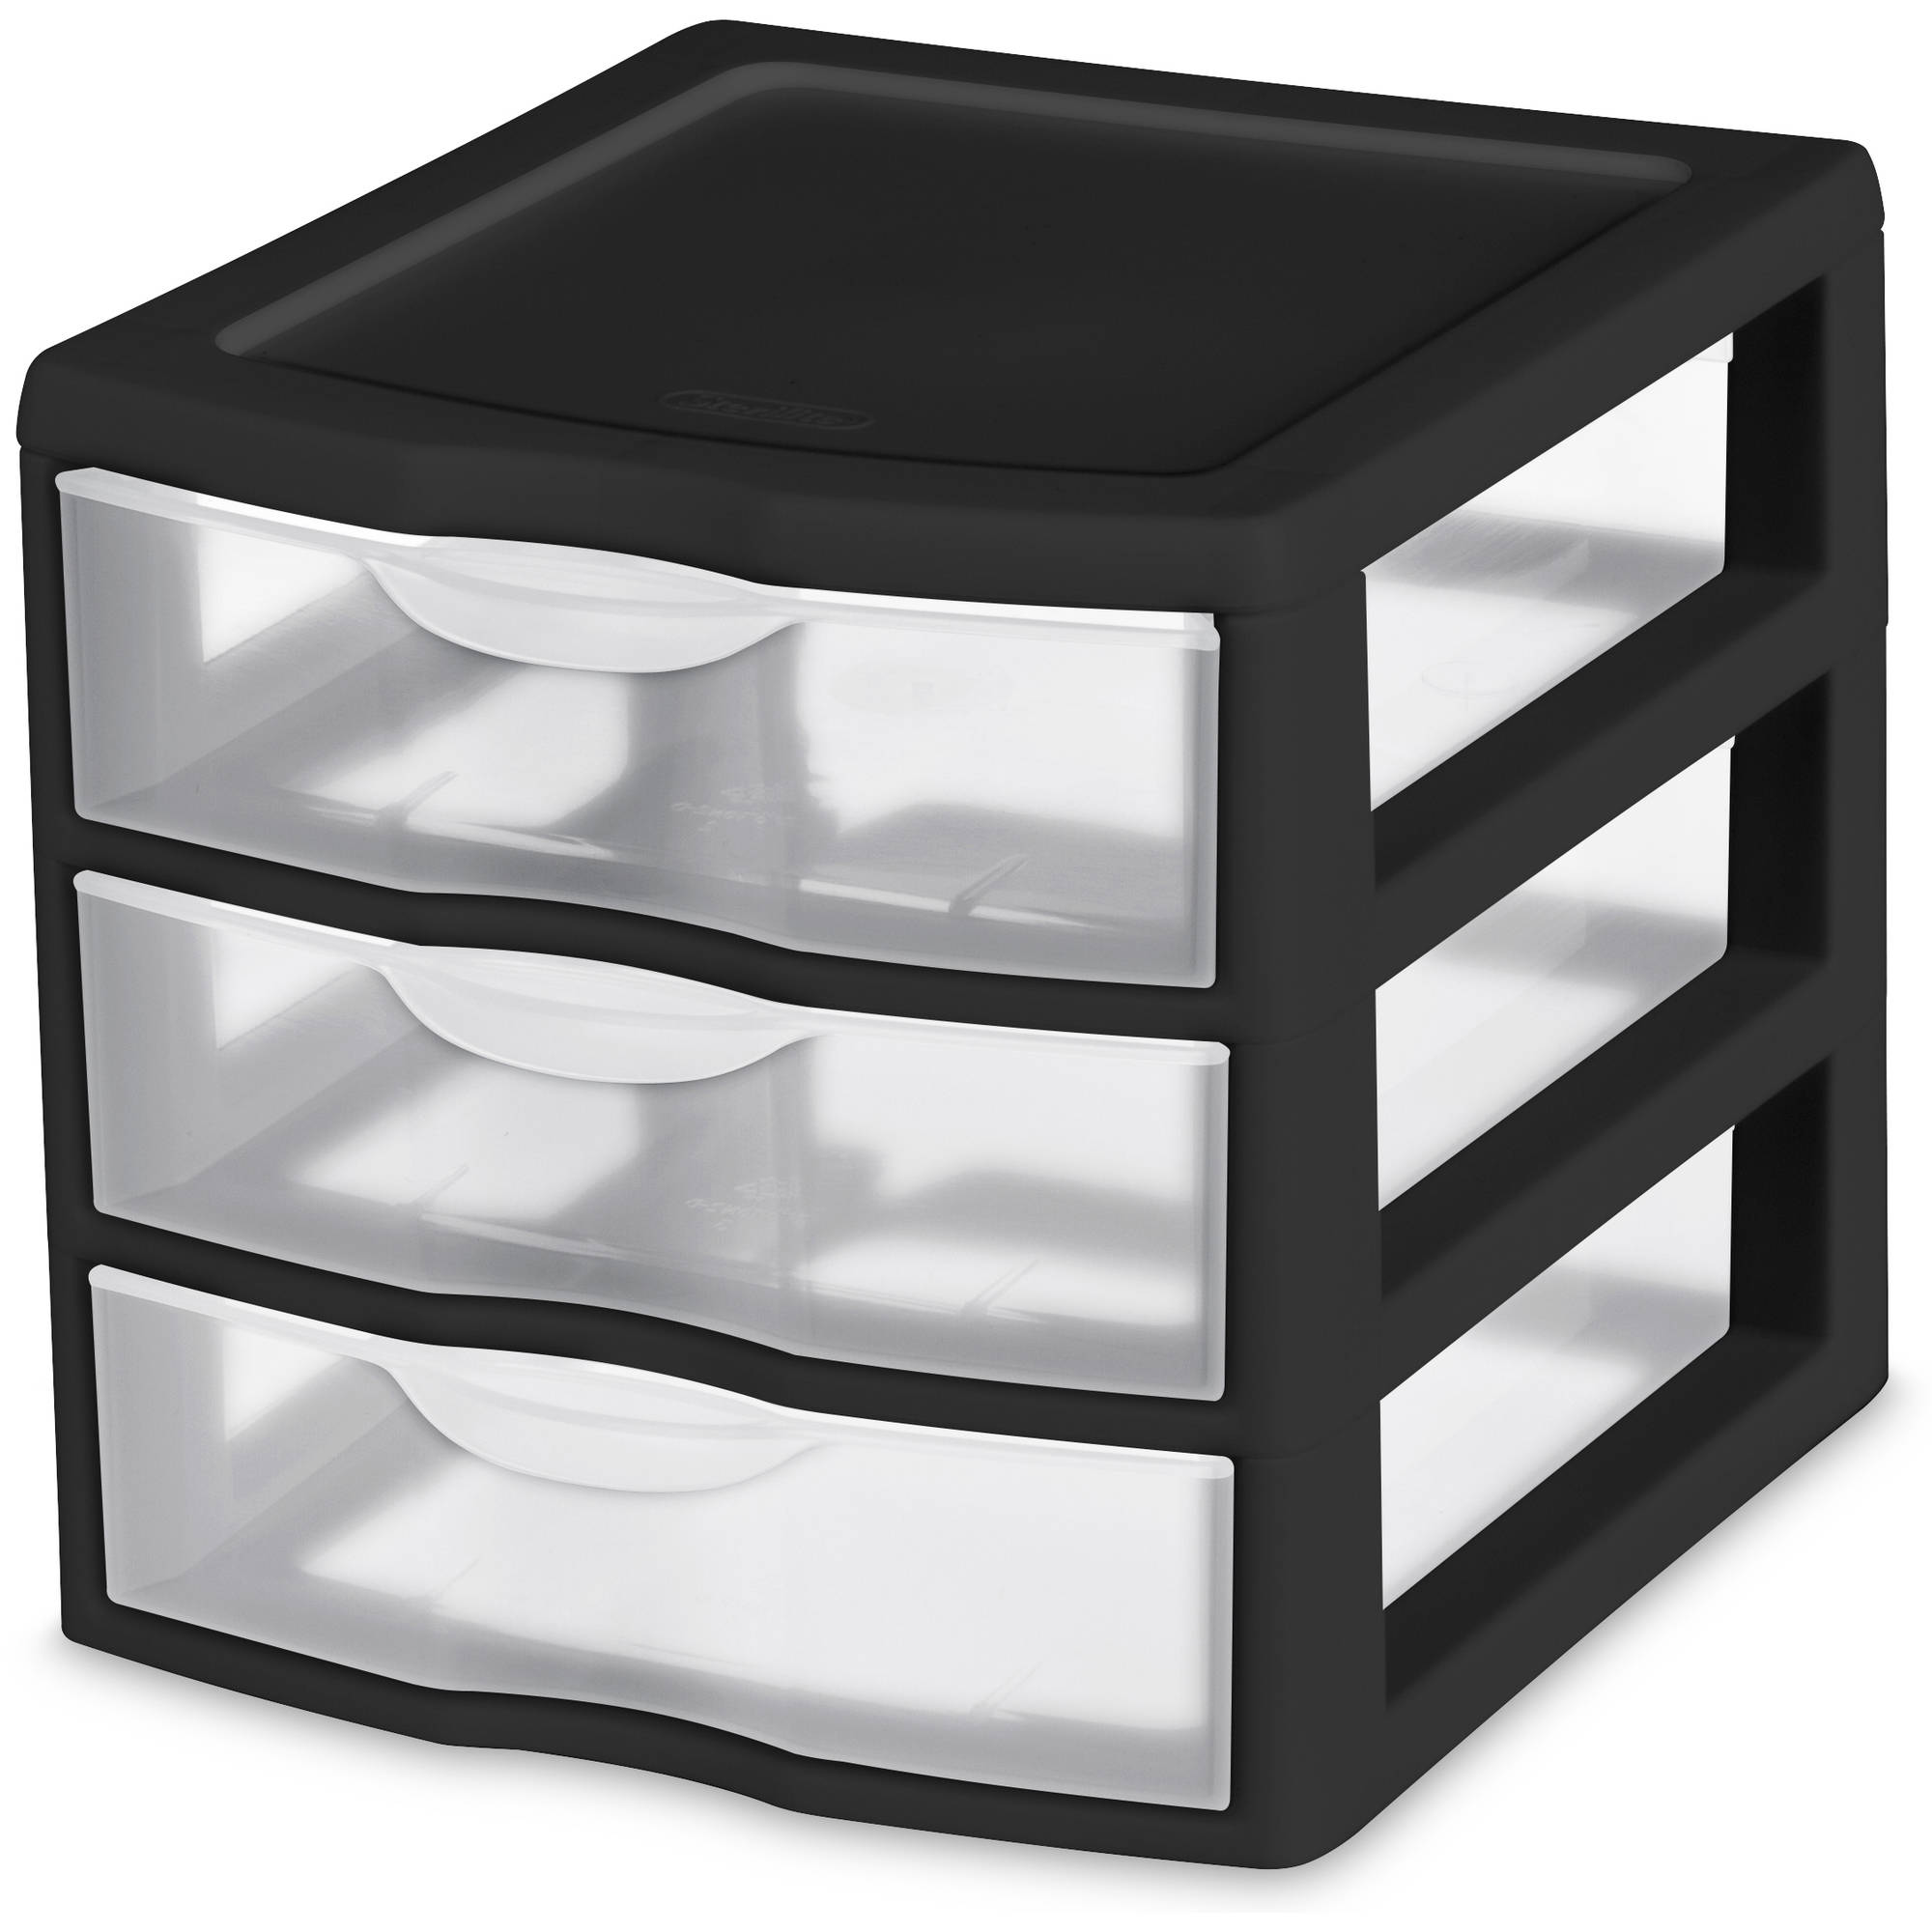 Sterilite Small 3 Drawer Unit- Black (Available in Case of 6 or Single Unit)